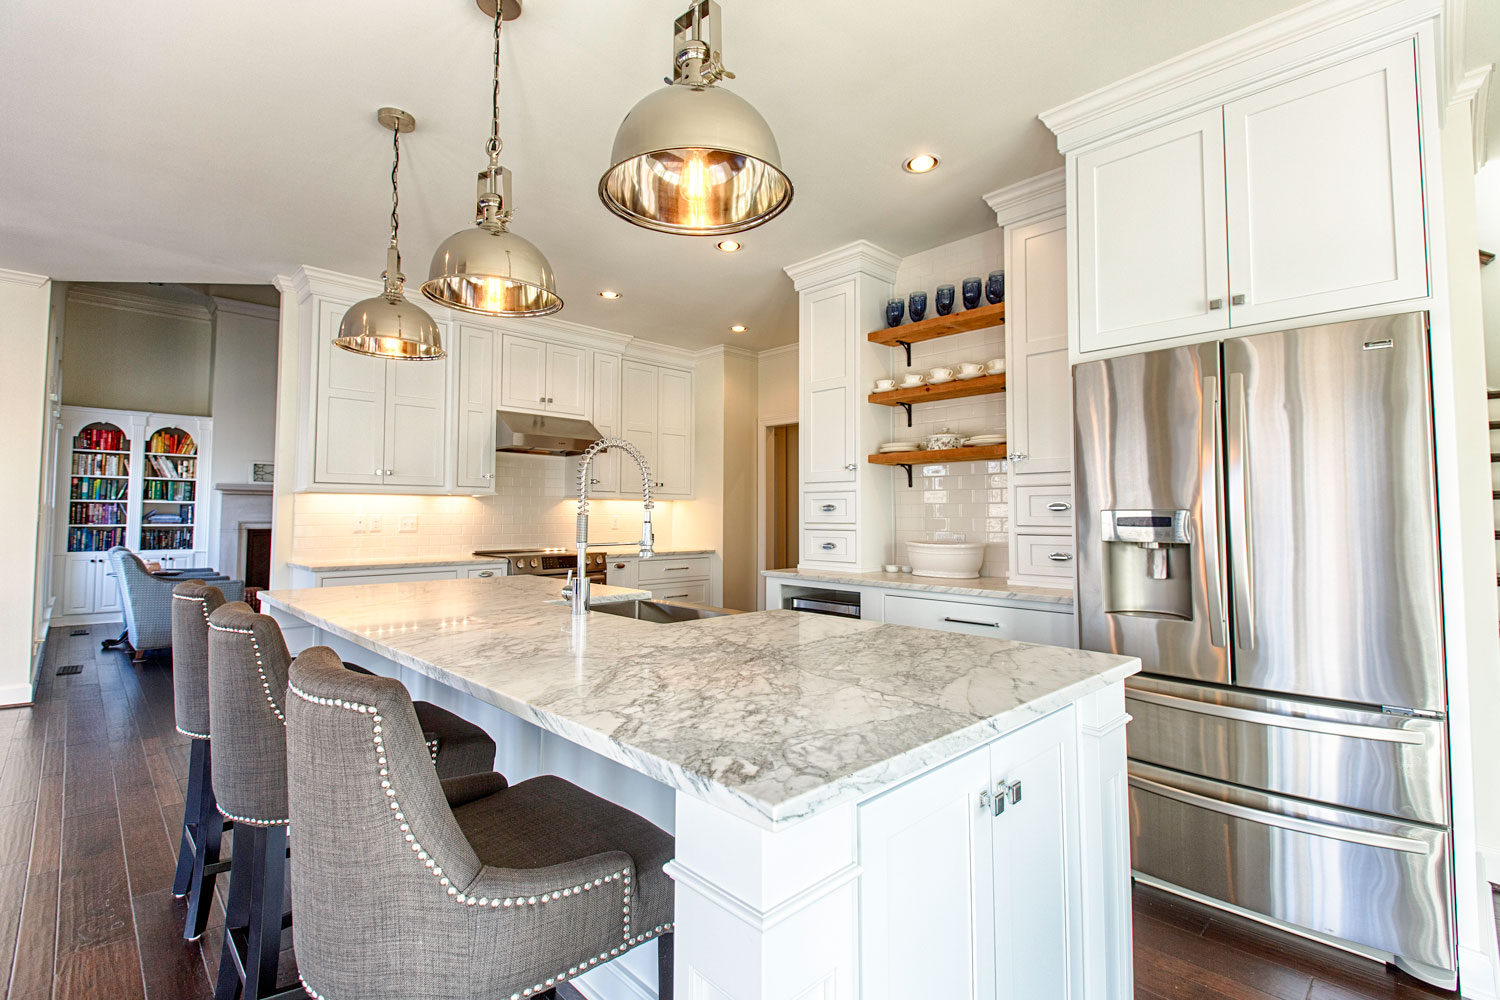 Open Kitchen Shelving Ideas For A Kitchen Renovation Toulmin Cabinetry Design